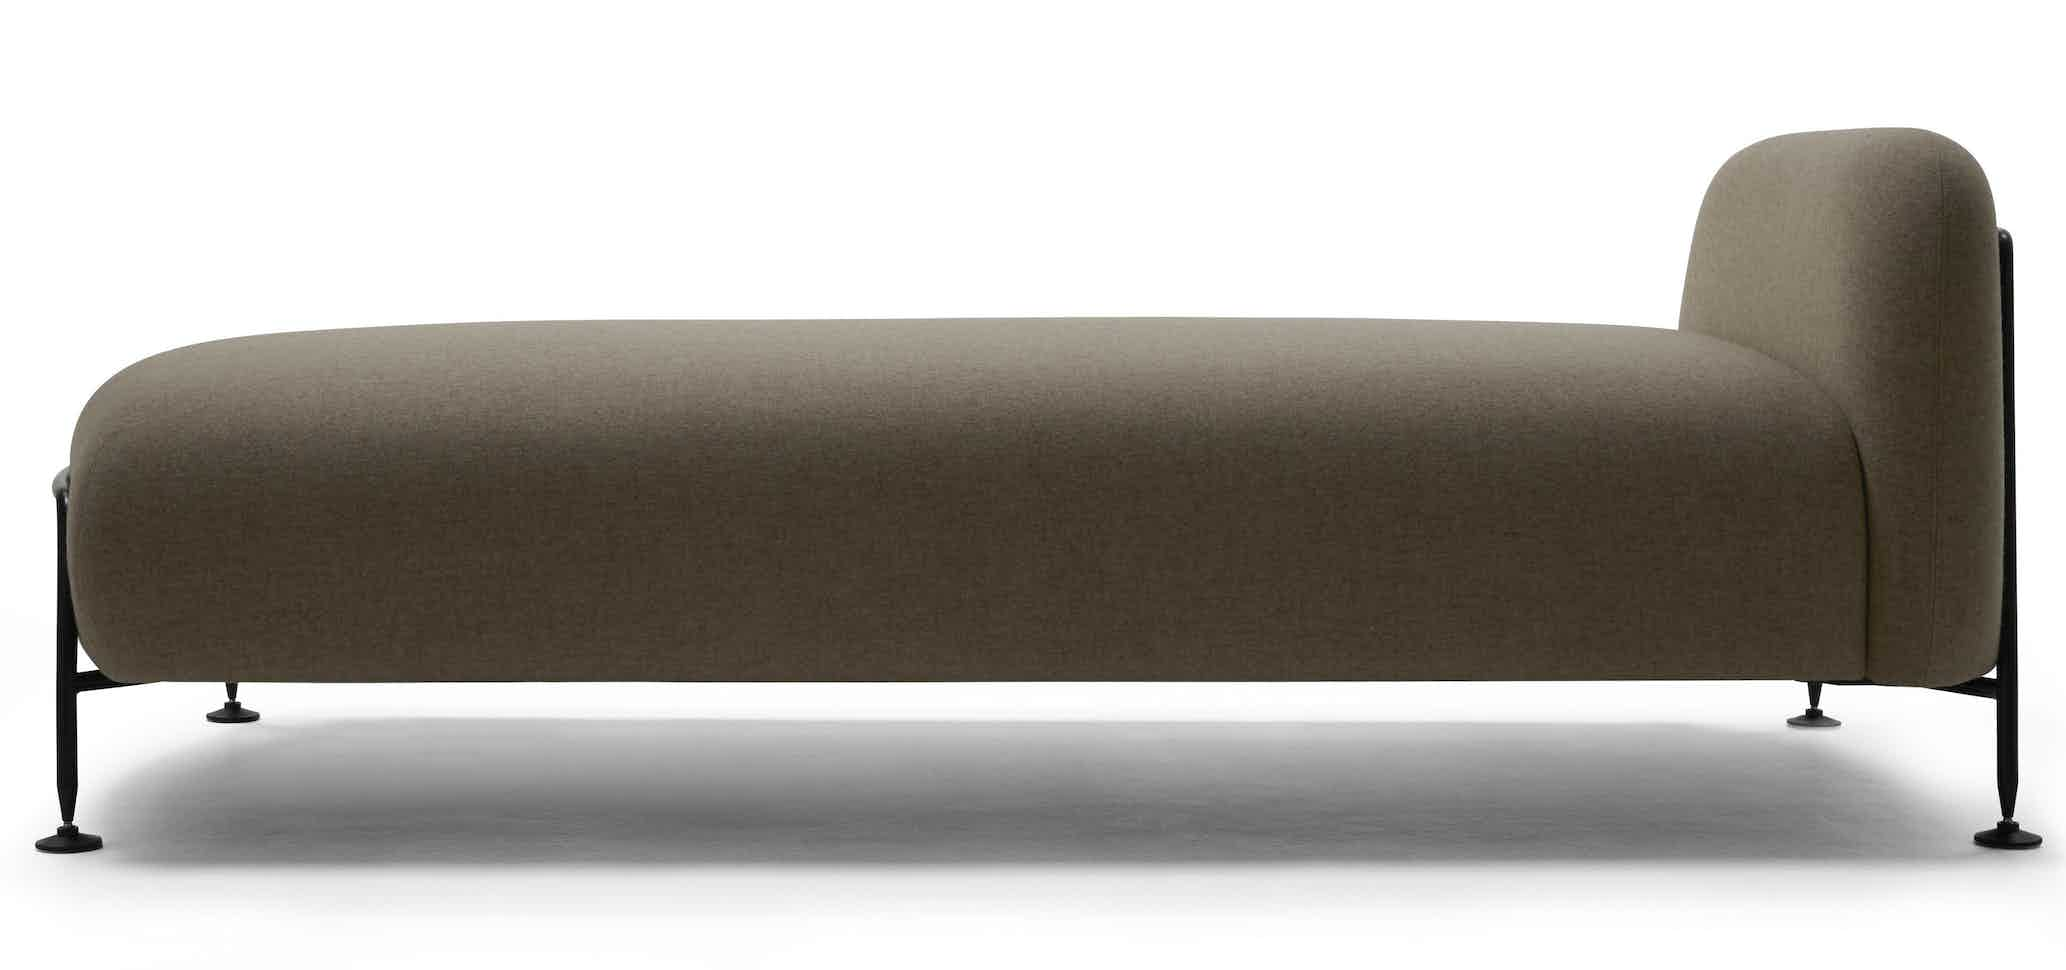 Massproductions Mega Daybed Side Haute Living 181219 160340